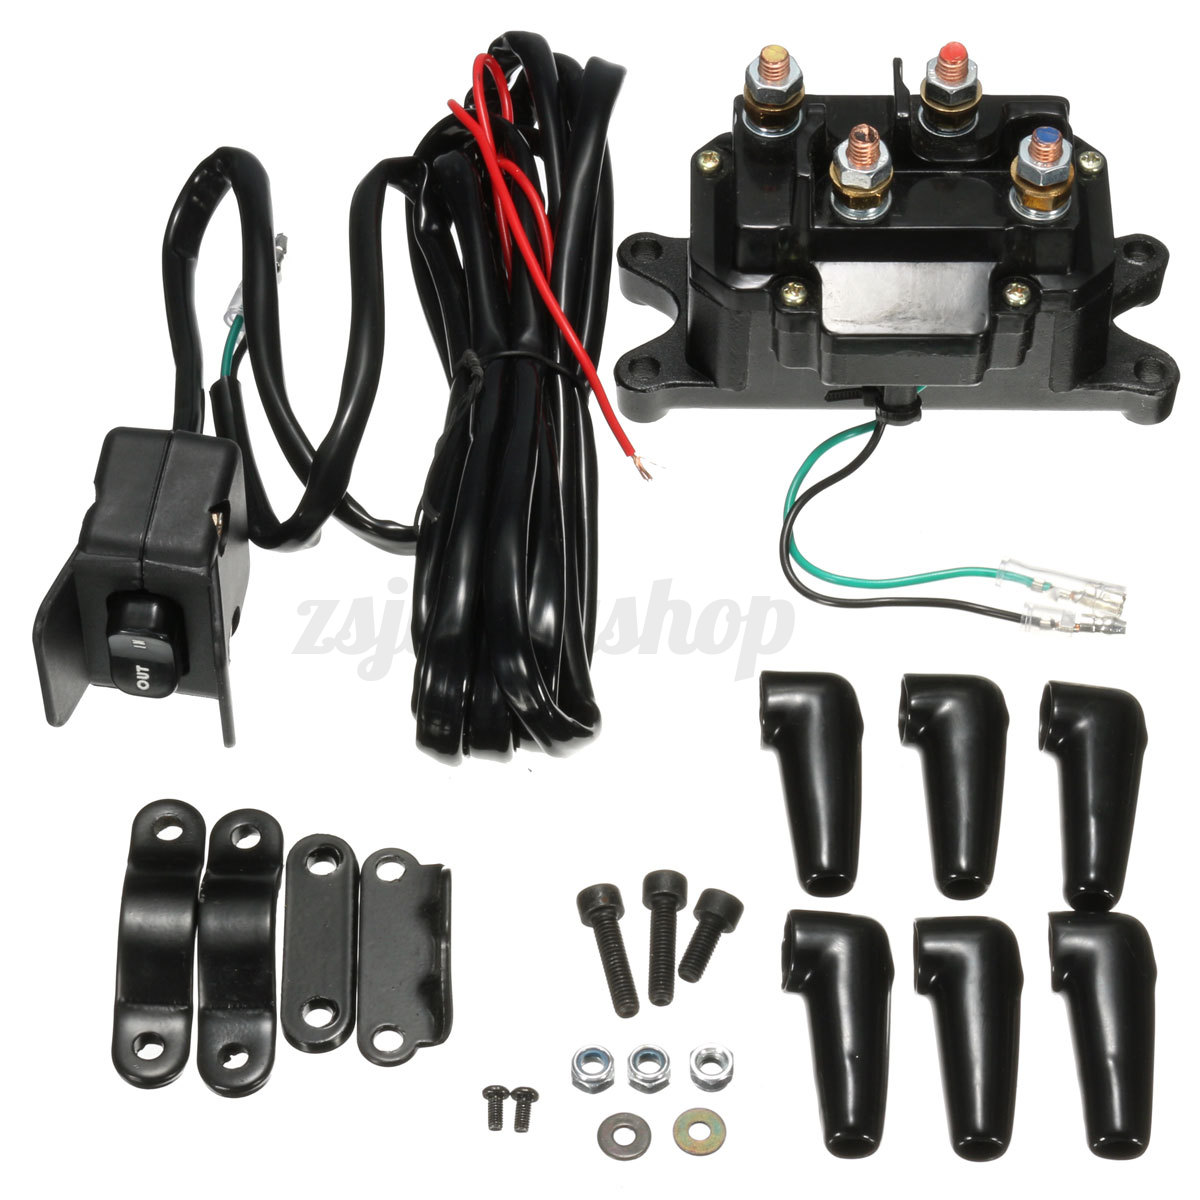 polaris winch contactor wiring diagram images parts diagram rocker switch wiring diagram besides warn atv winch as